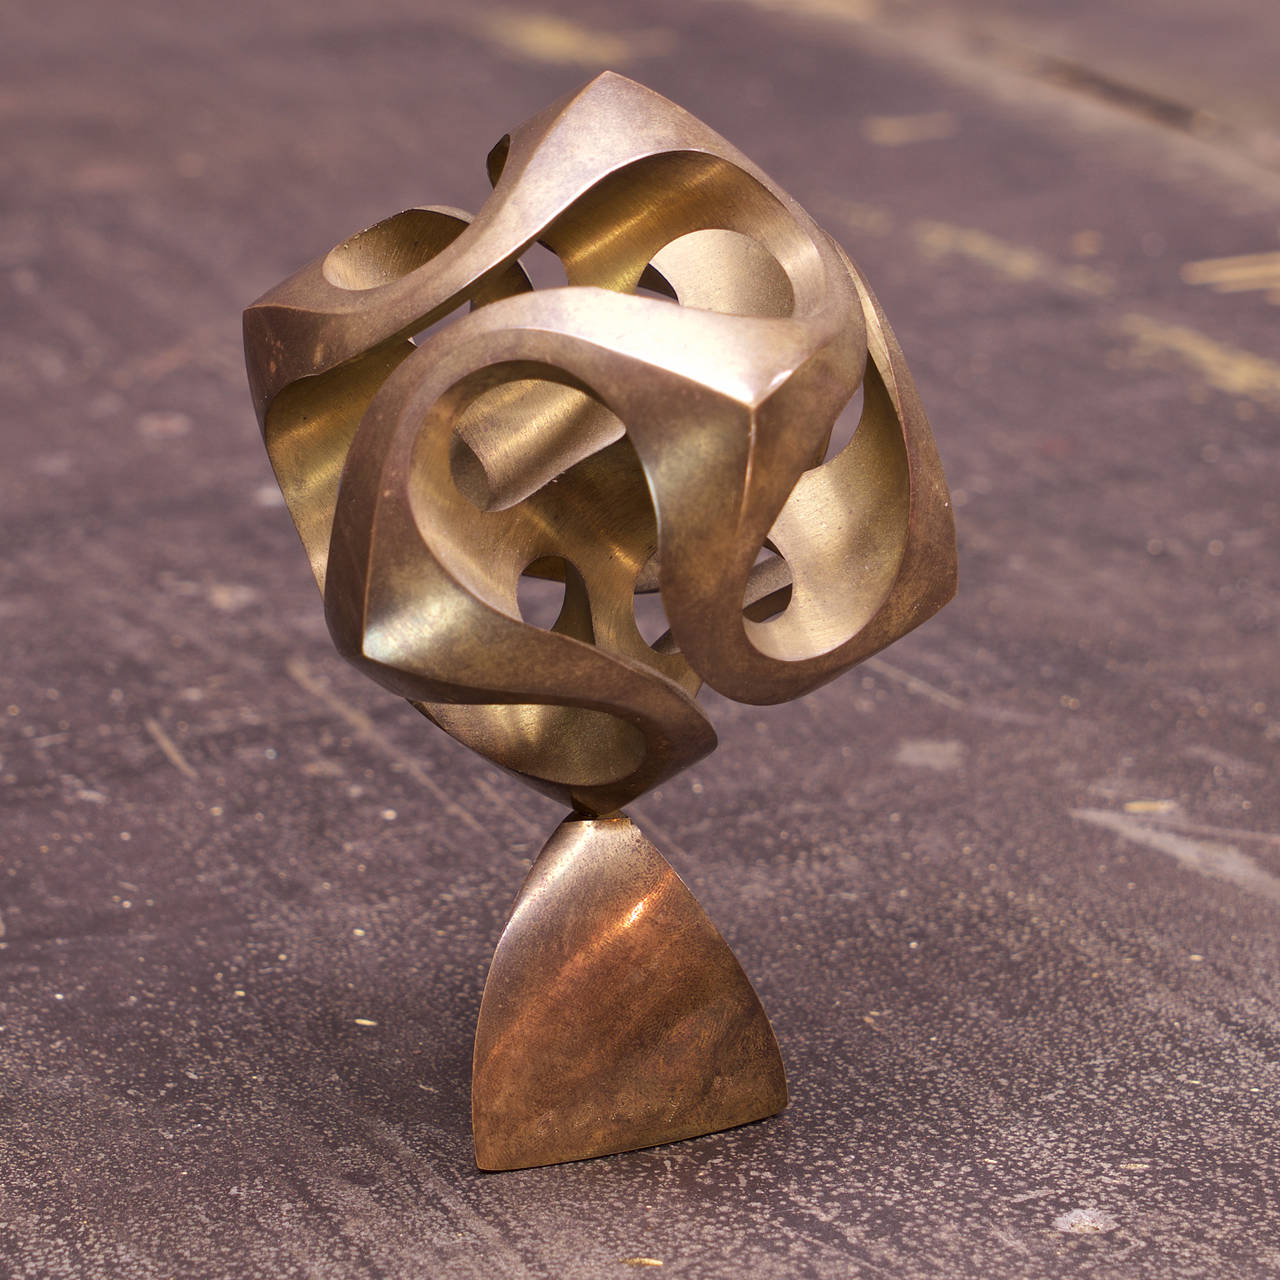 Rare and Early MOMA/MIT Mathematical Statuette, 80/1000. Solid Bronze Swiveling Sphere on Bronze Base. Signed, Numbered.  Dia: 3.5 x H: 5.25 in.